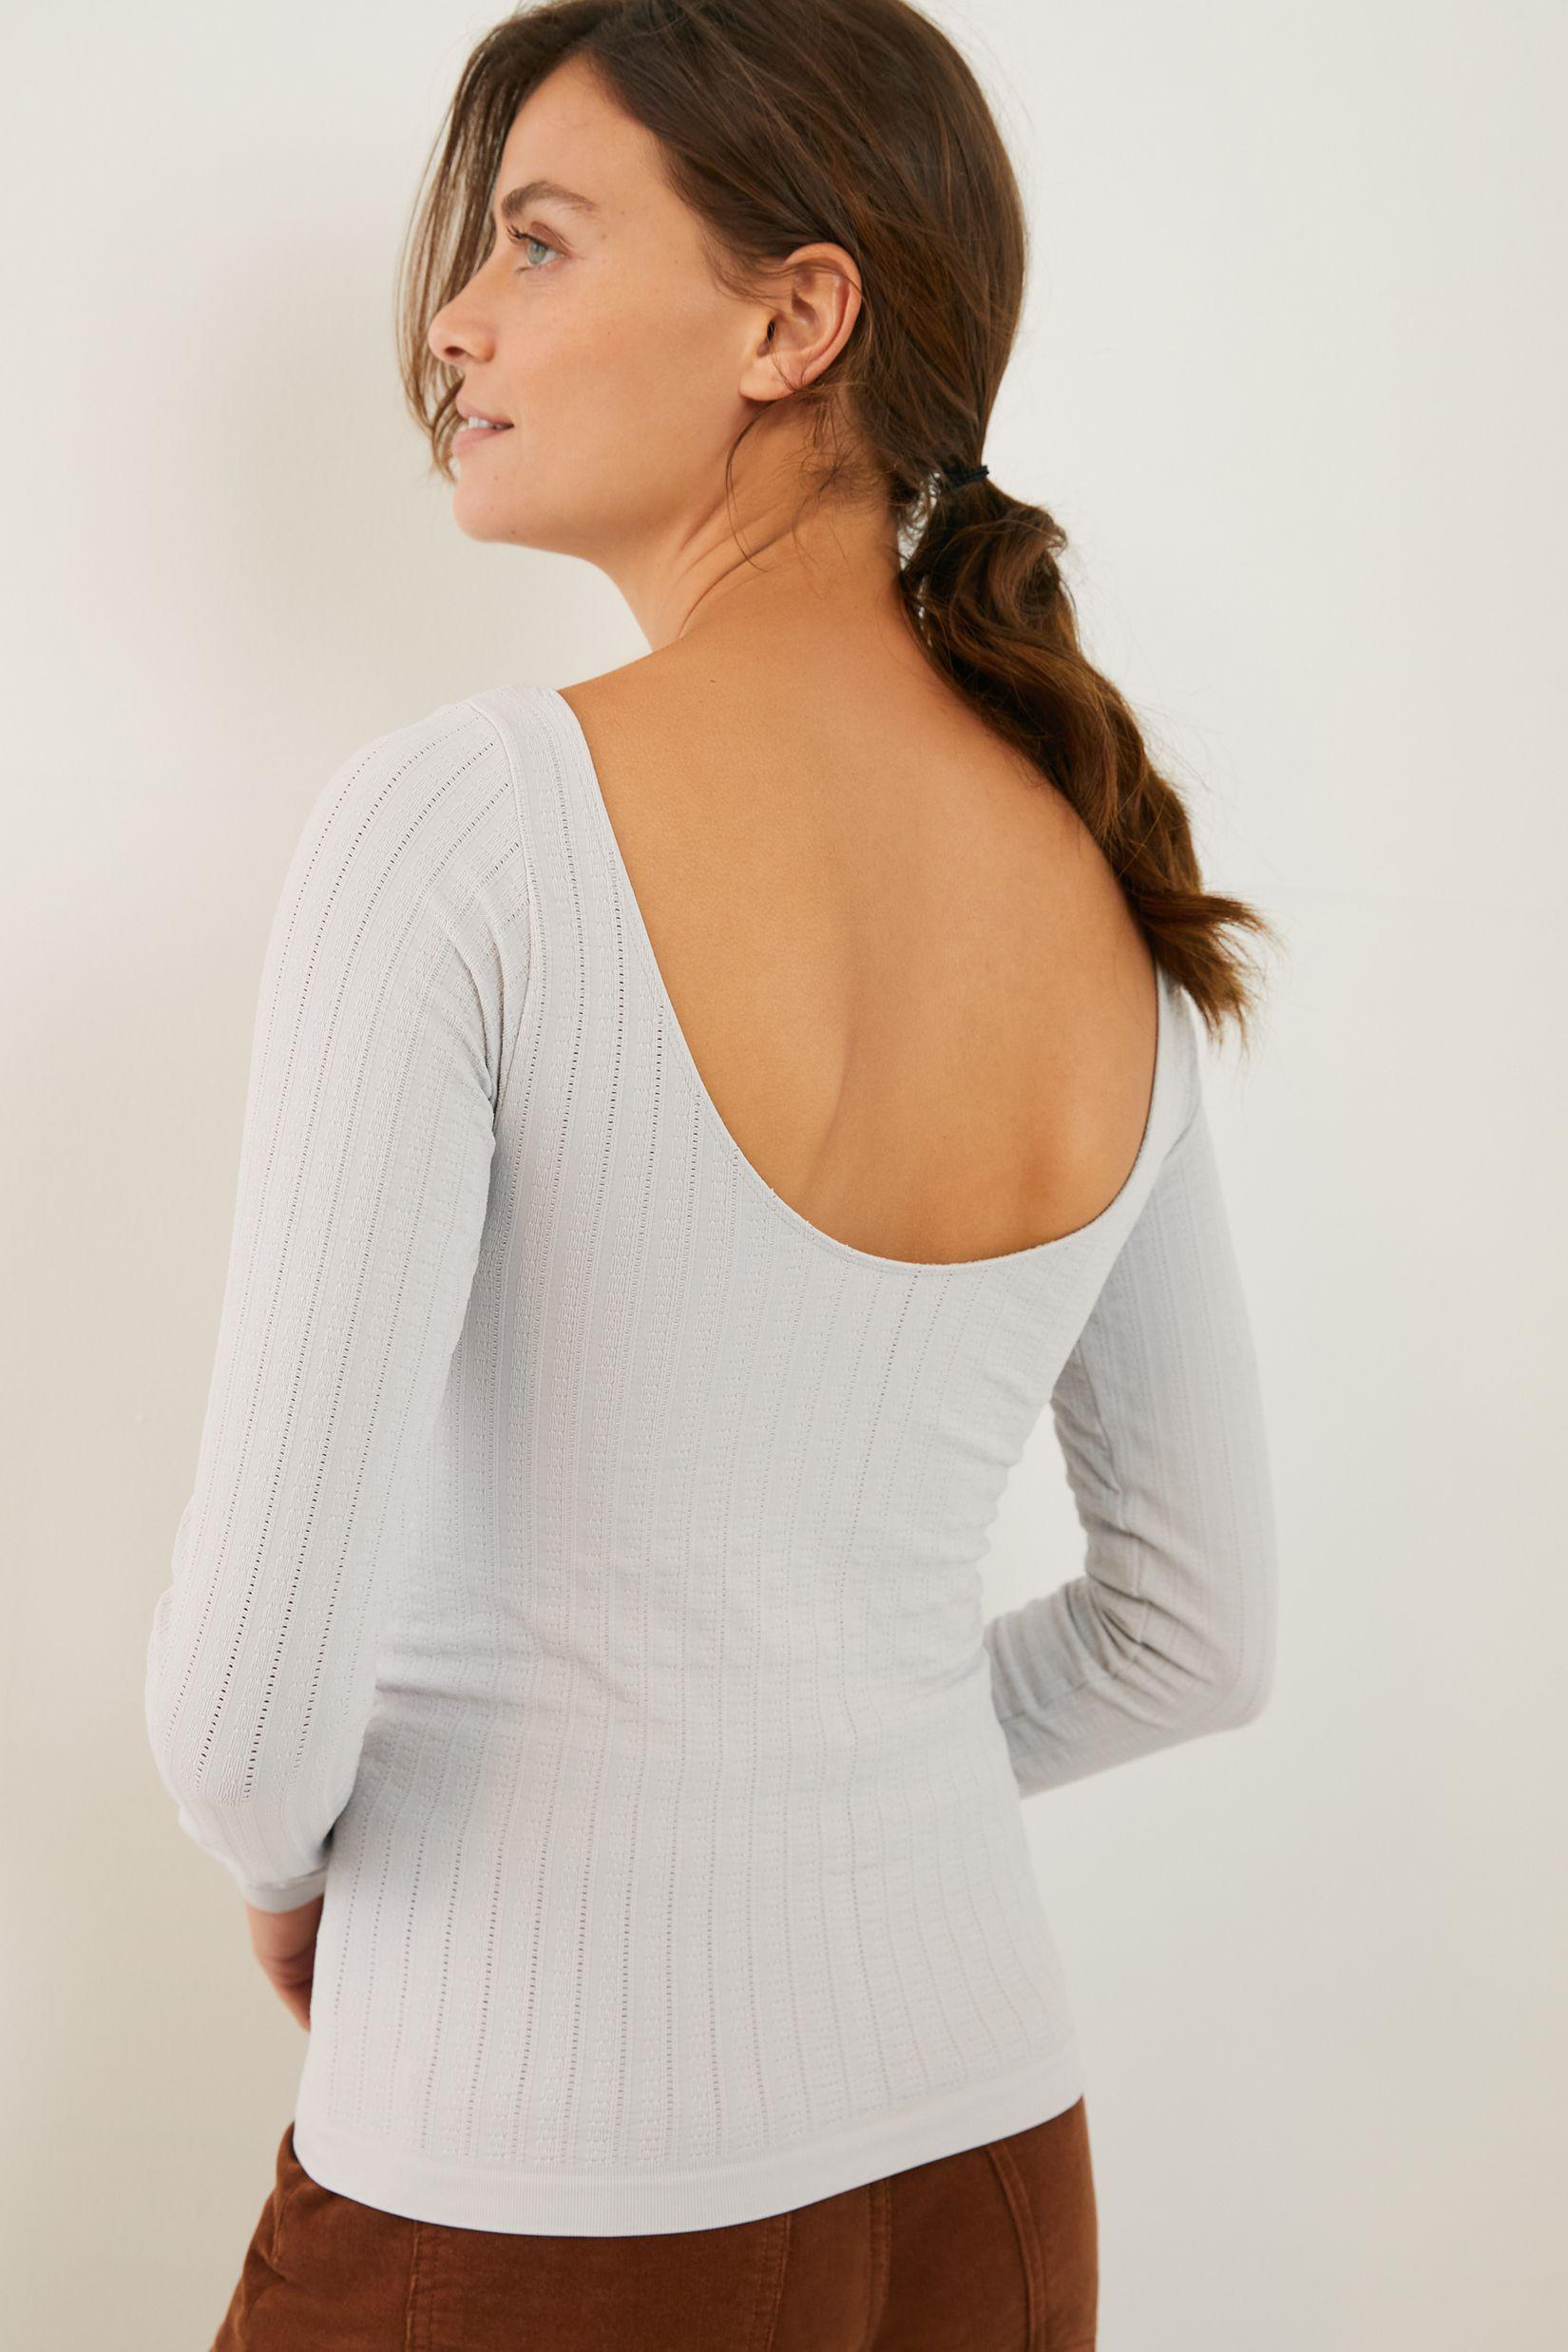 Aidy Seamless Scoop-Back Top 2